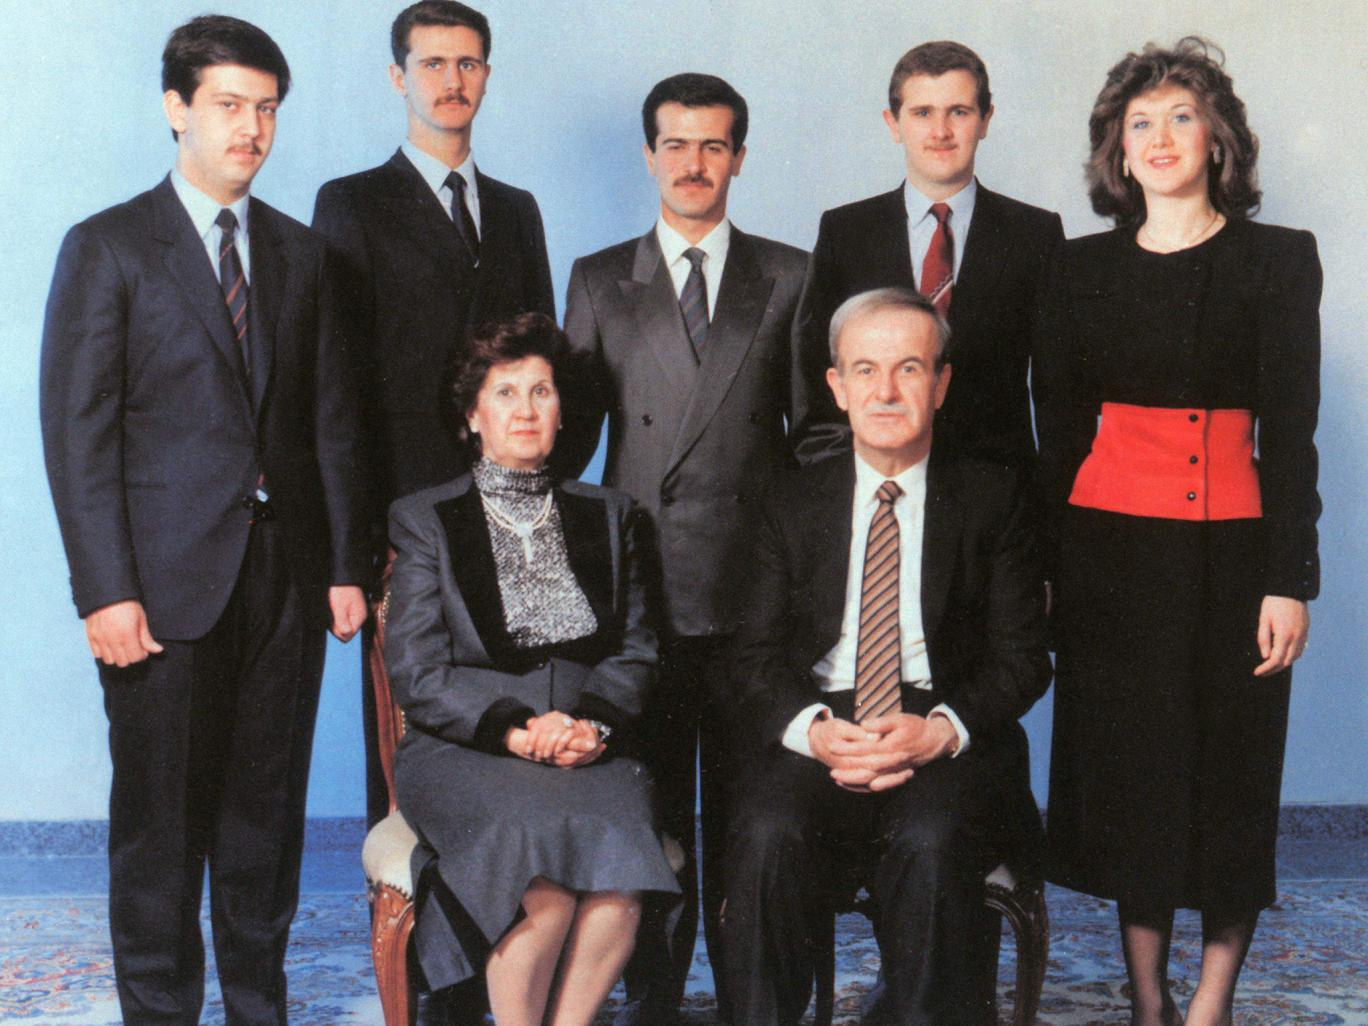 The Assad family prior to 1994